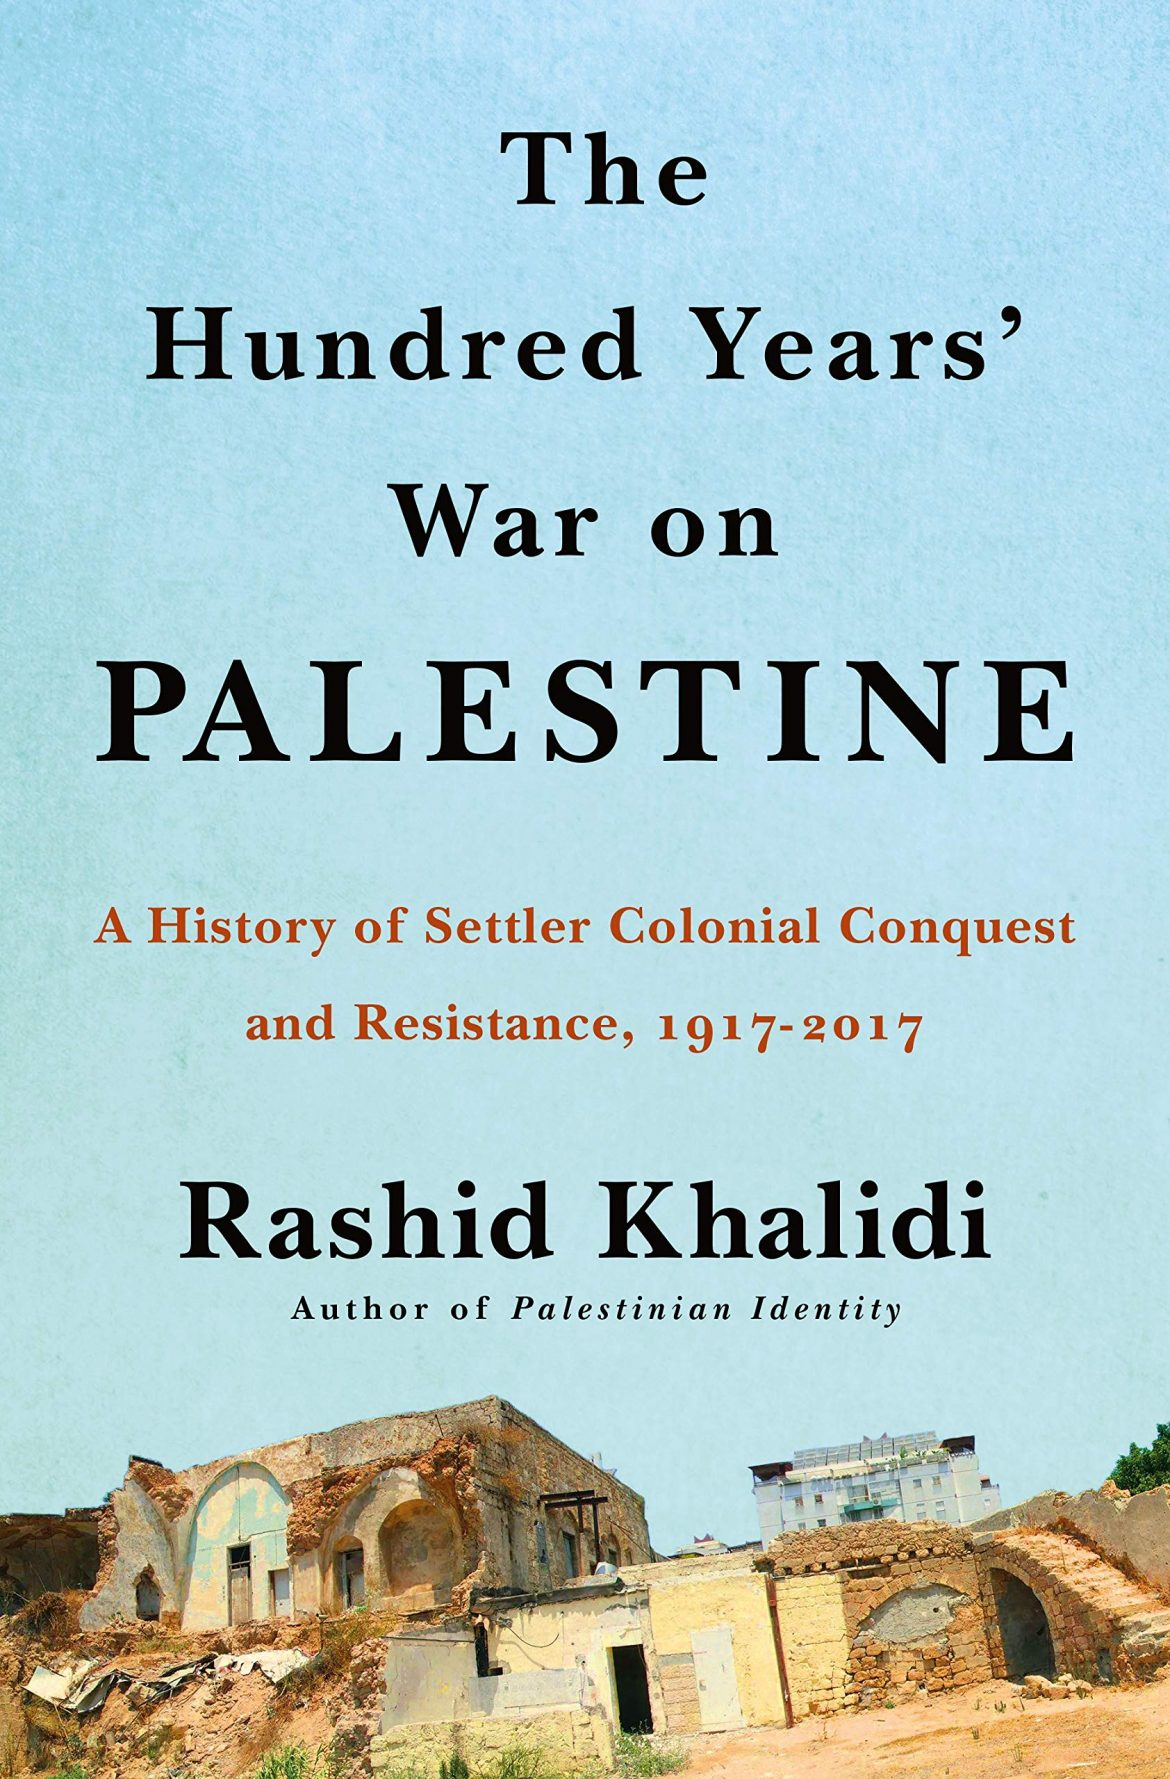 The Hundred Years War on Palestine A History of Settler Colonial Conquest and Resistance